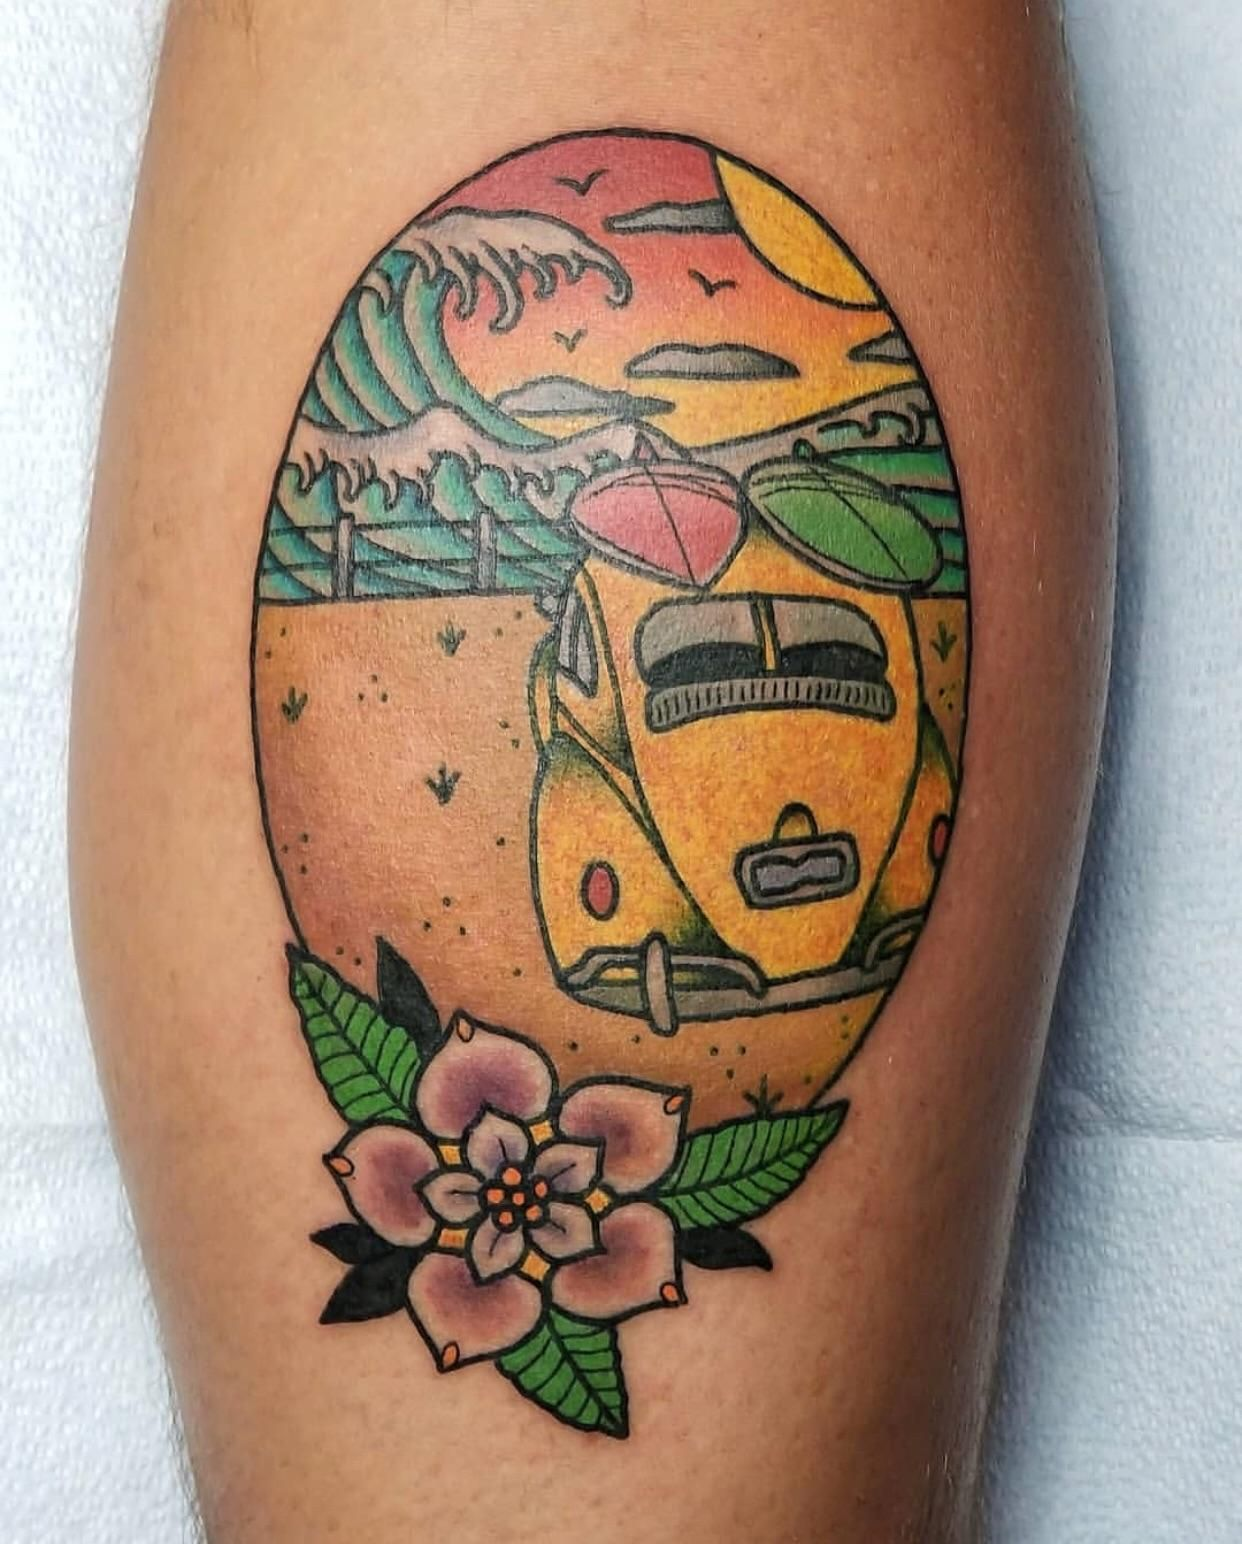 49+ Awesome Endless summer tattoo ink master image ideas